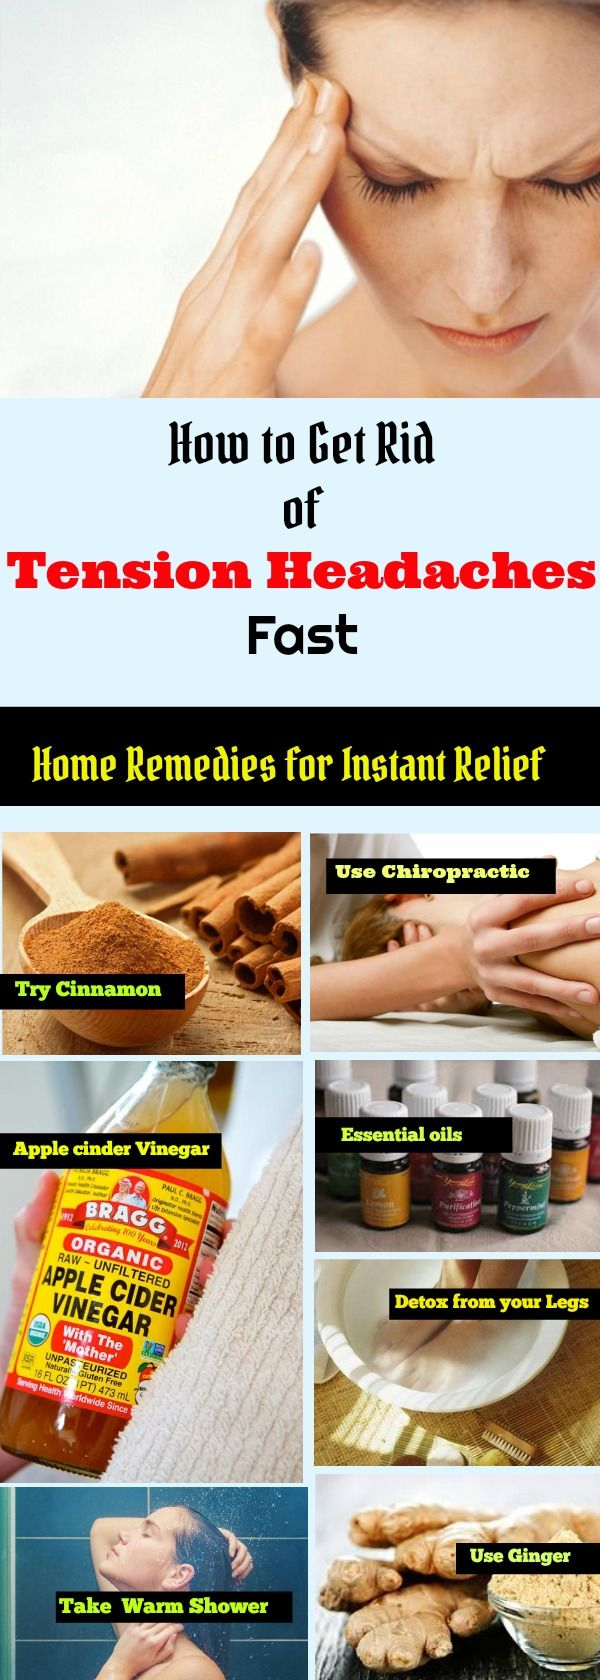 How to Get Rid of Tension Headaches Fast .   Got headaches and anxiety ? Learn now how use this 7 effective home remedies for instant relief . You  may want to get all this ingredients ready ; essential oil,ginger apple cider vinegar ,cinnamon power,and yoga matt.